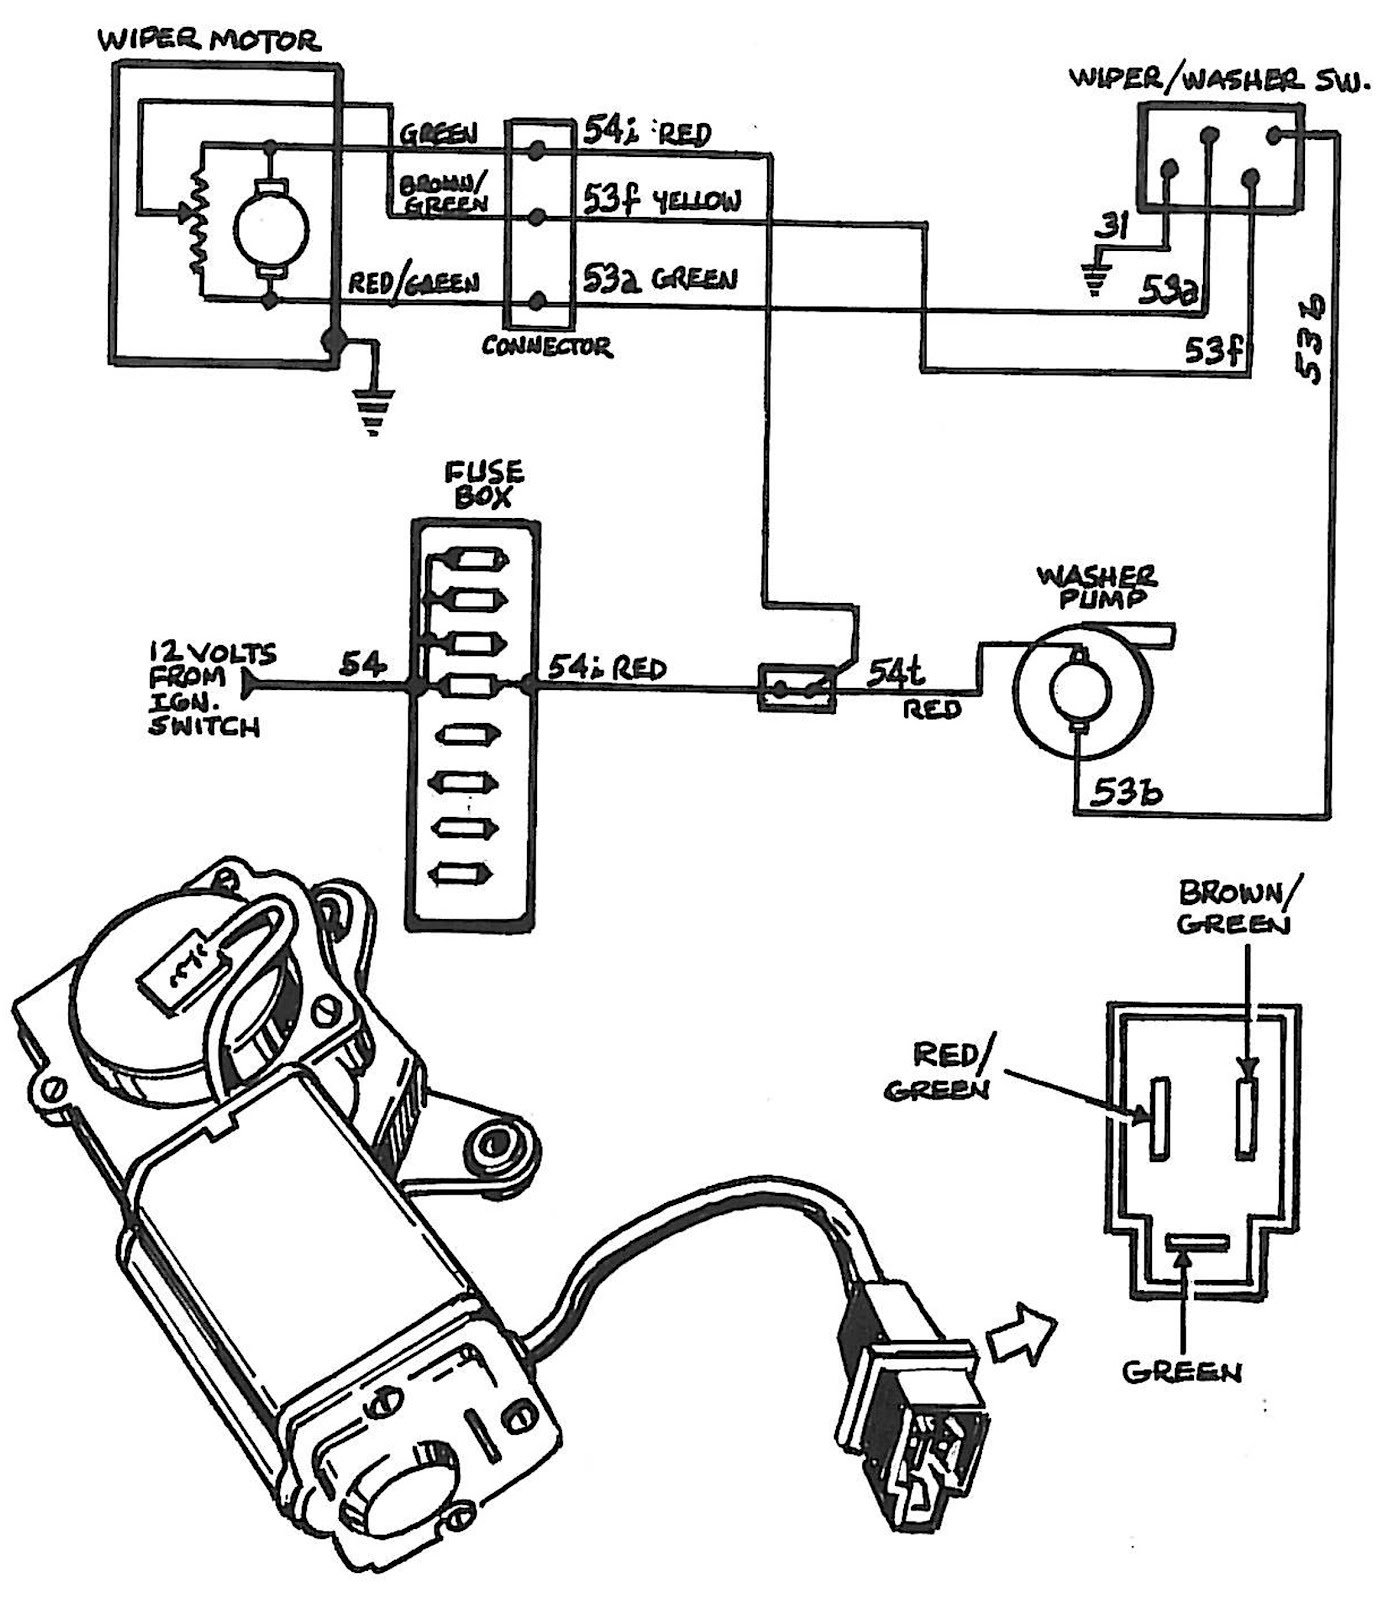 ford motor wiring schematic diagram Ford Model A Wiring 2000 ford explorer rear window wiper motor wiring wiring diagram 1965 ford truck wiring ford motor